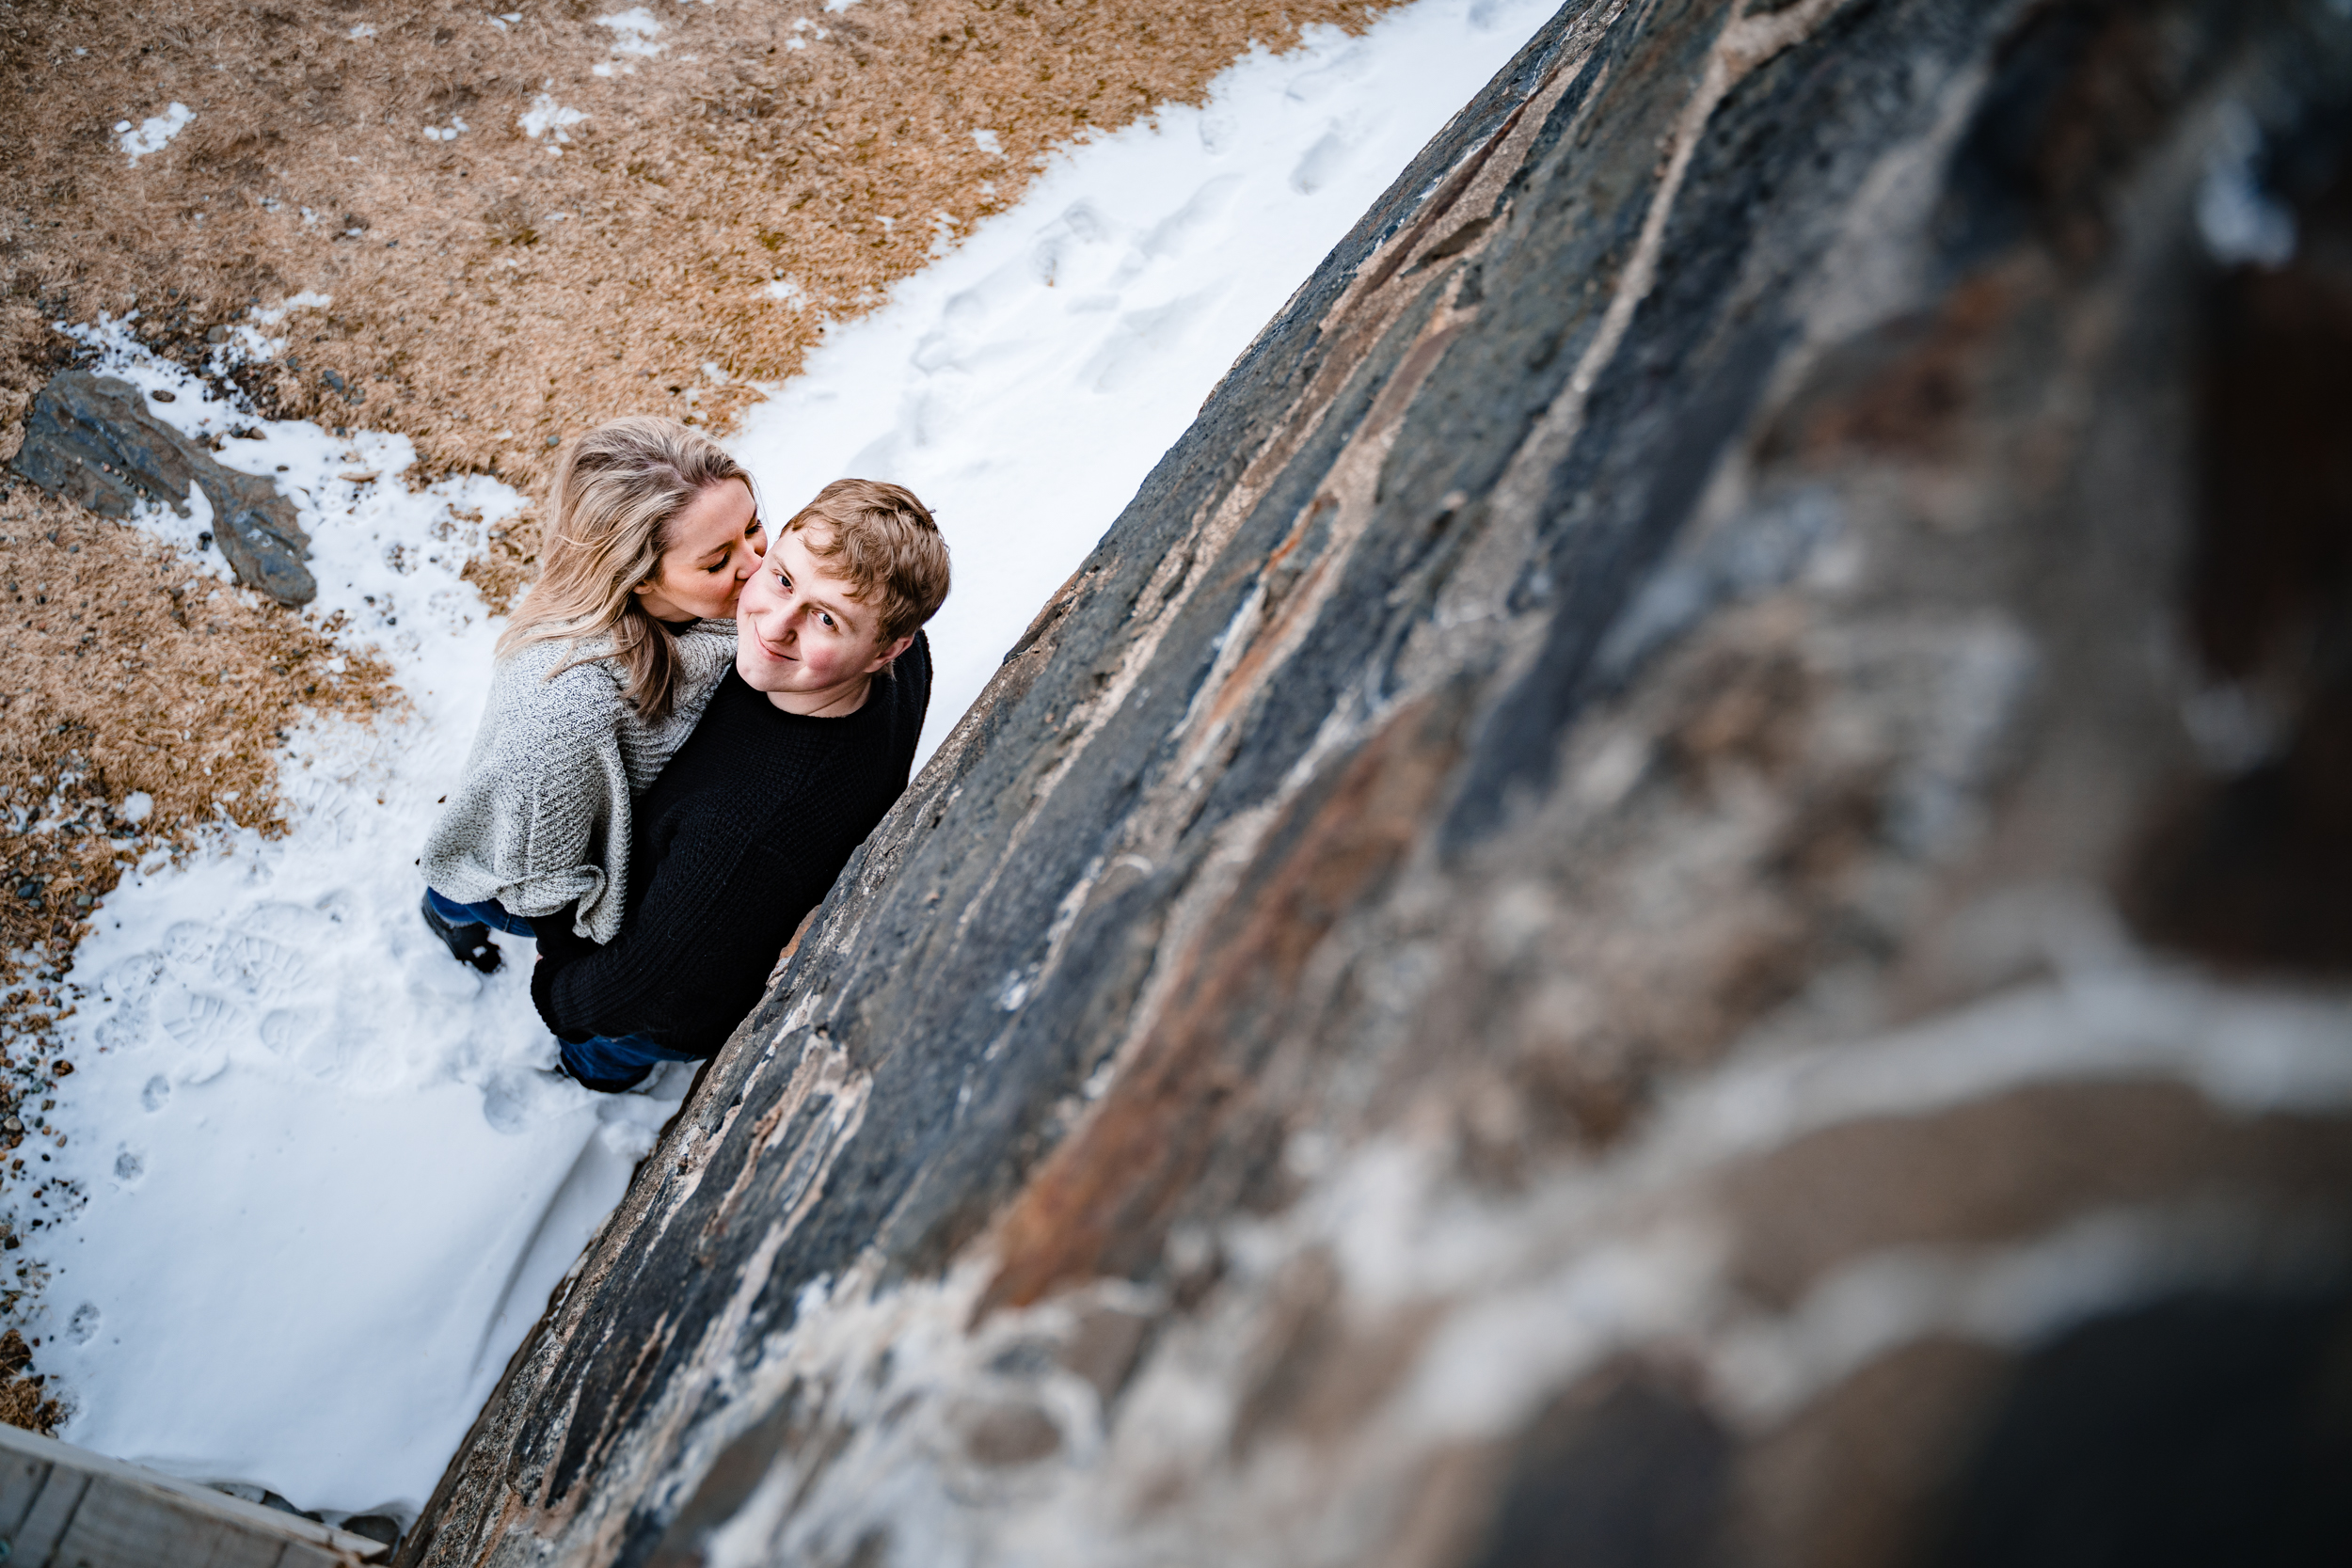 Haley&Brandon (33 of 64)halifax-novascotia-engagementphotography-wedding-foxandfellow-Ottawa-winter.jpg